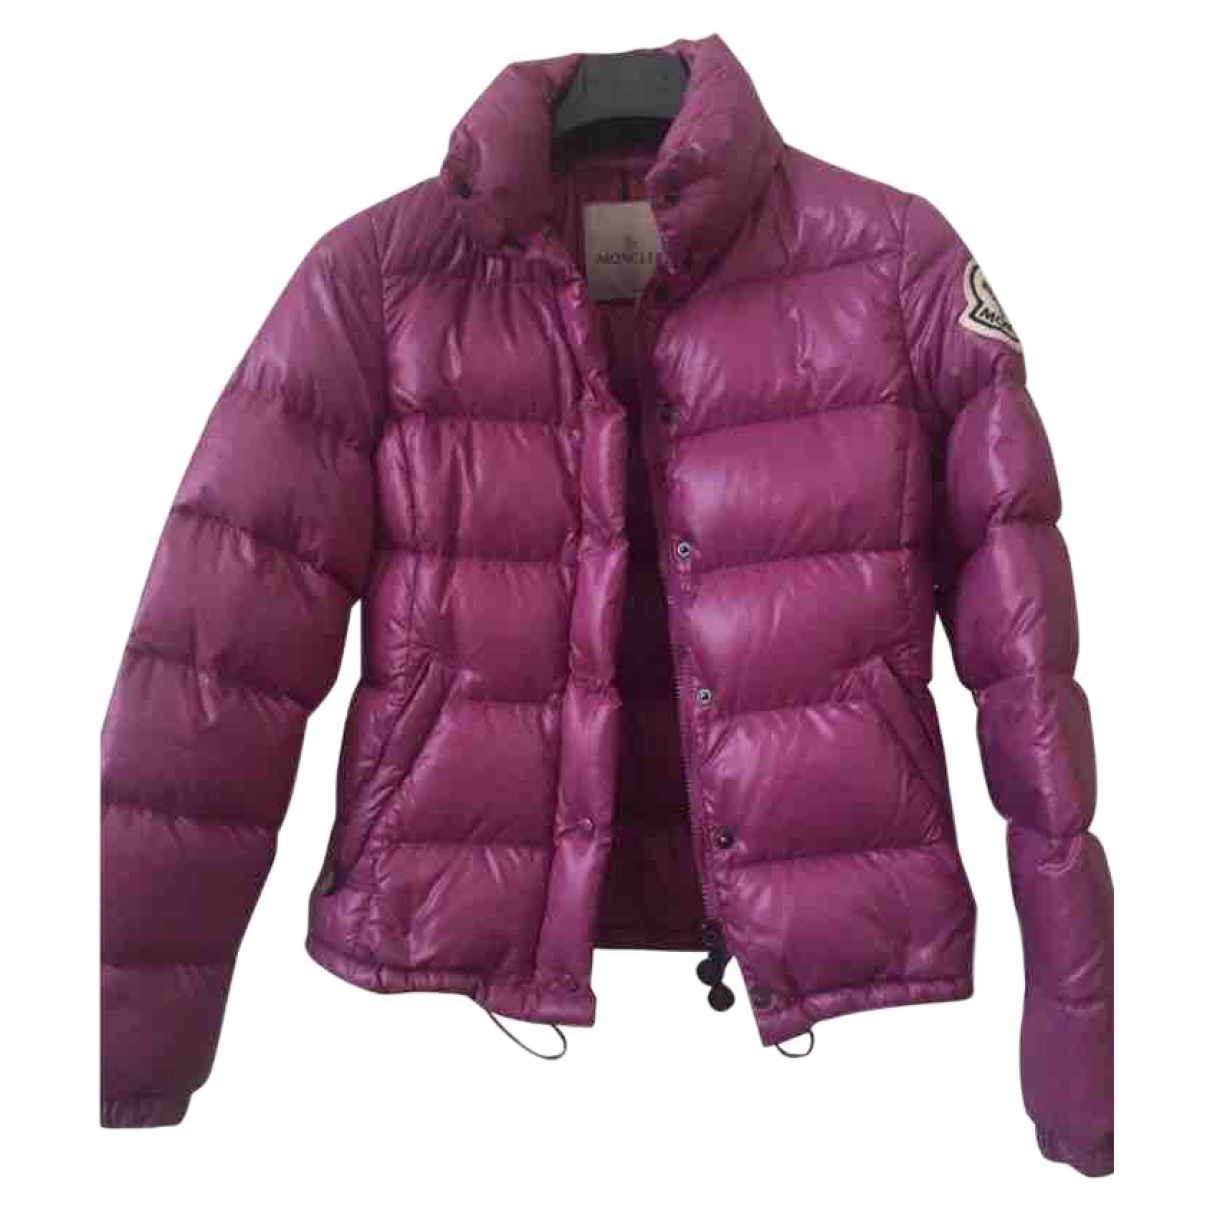 Moncler Classic Purple coat for Women 0 0-5